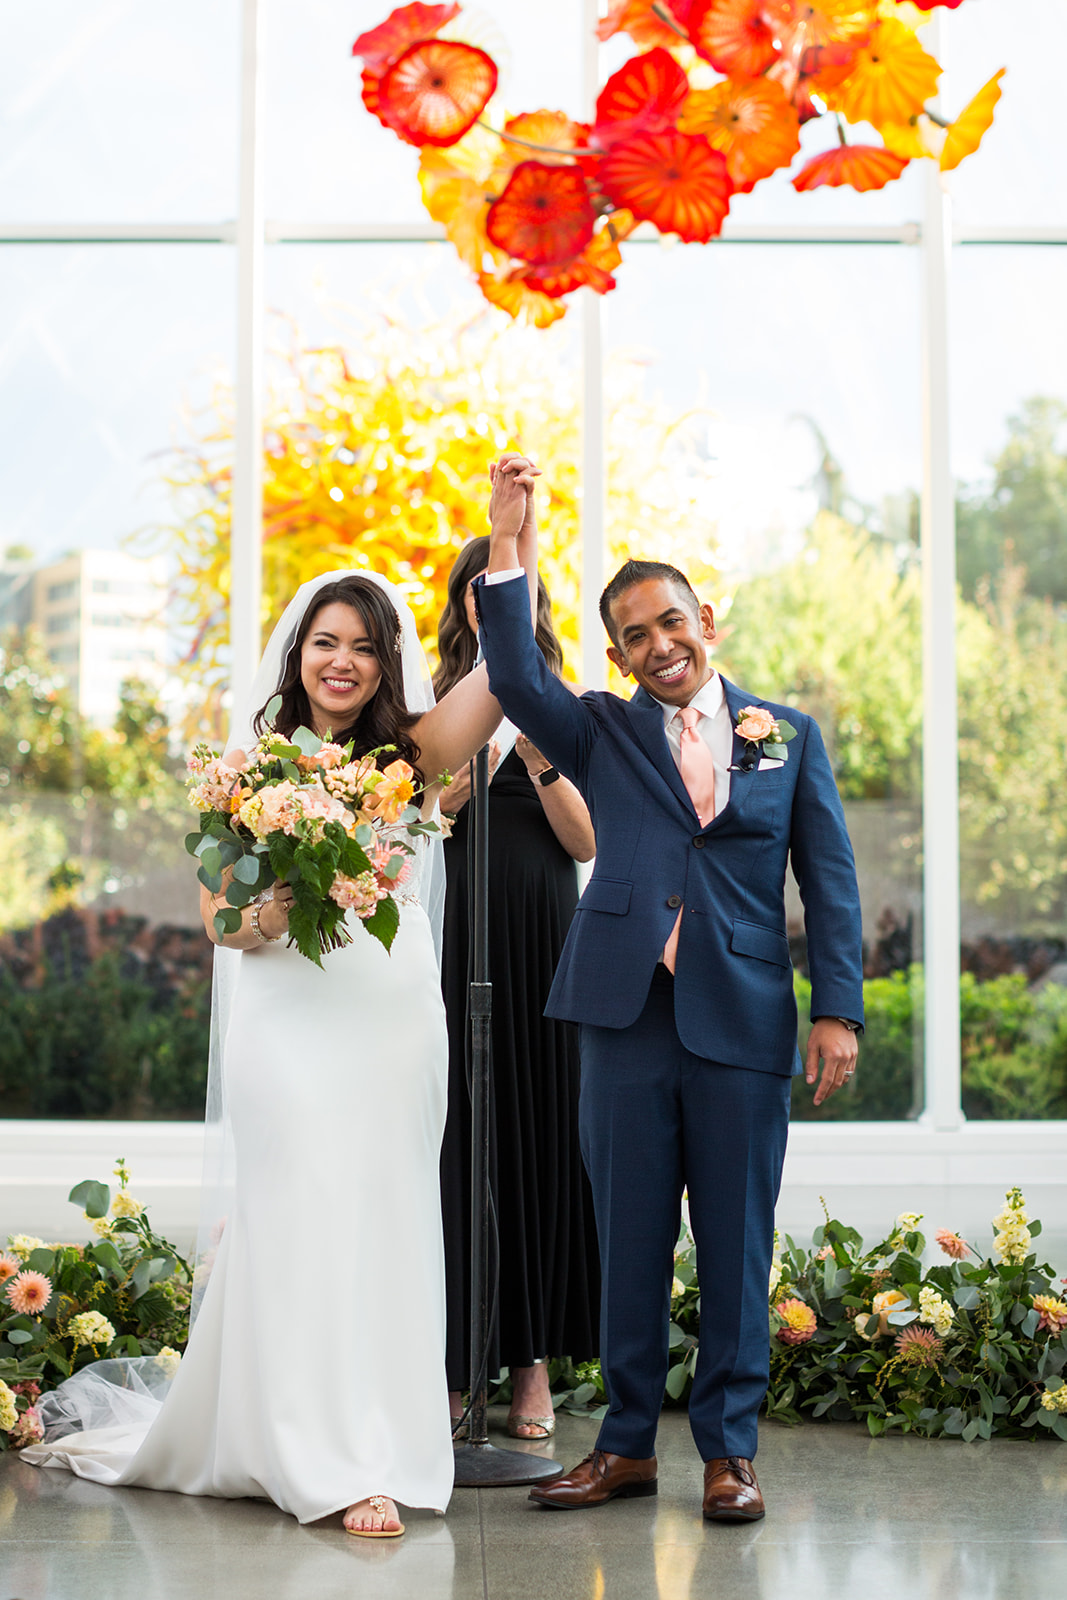 Bride and groom just married at their fall navy blue and burnt orange wedding at Chihuly | Flora Nova Design